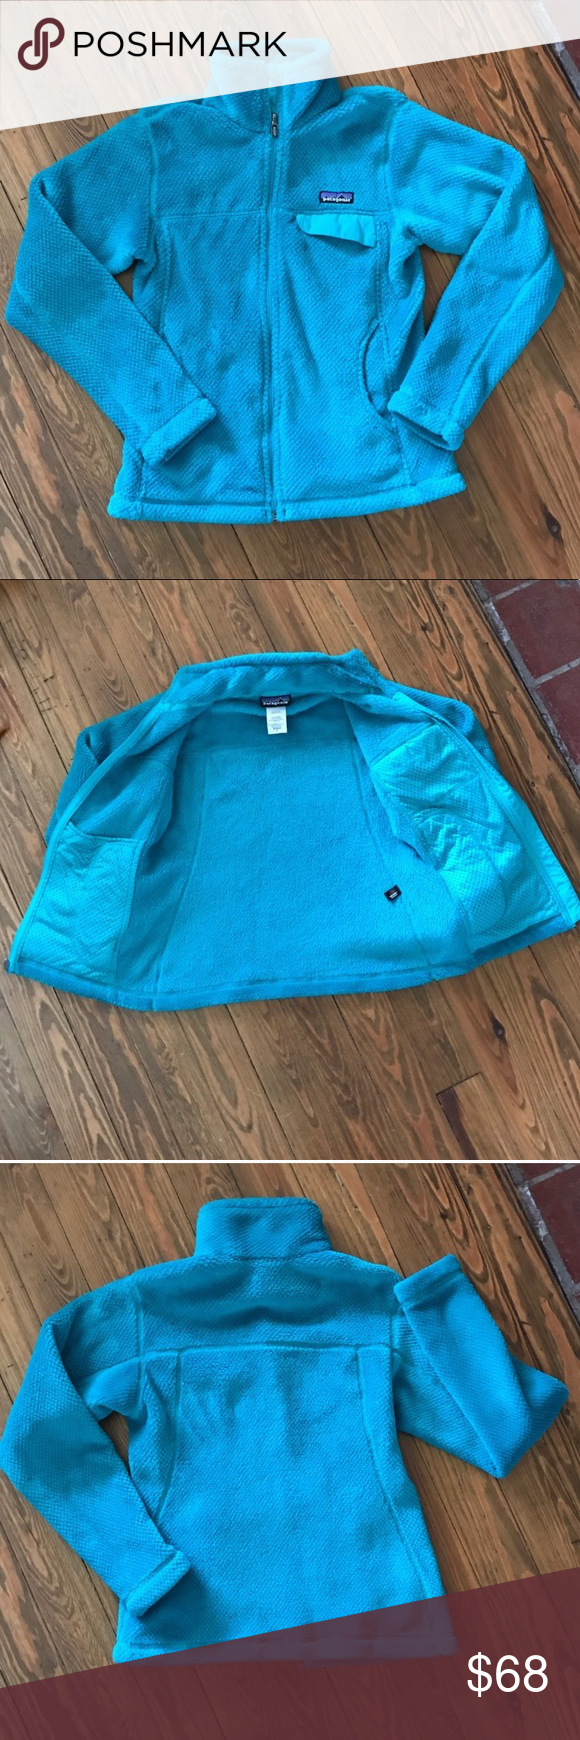 Patagonia fleece jacket womenus small excellent condition worn less